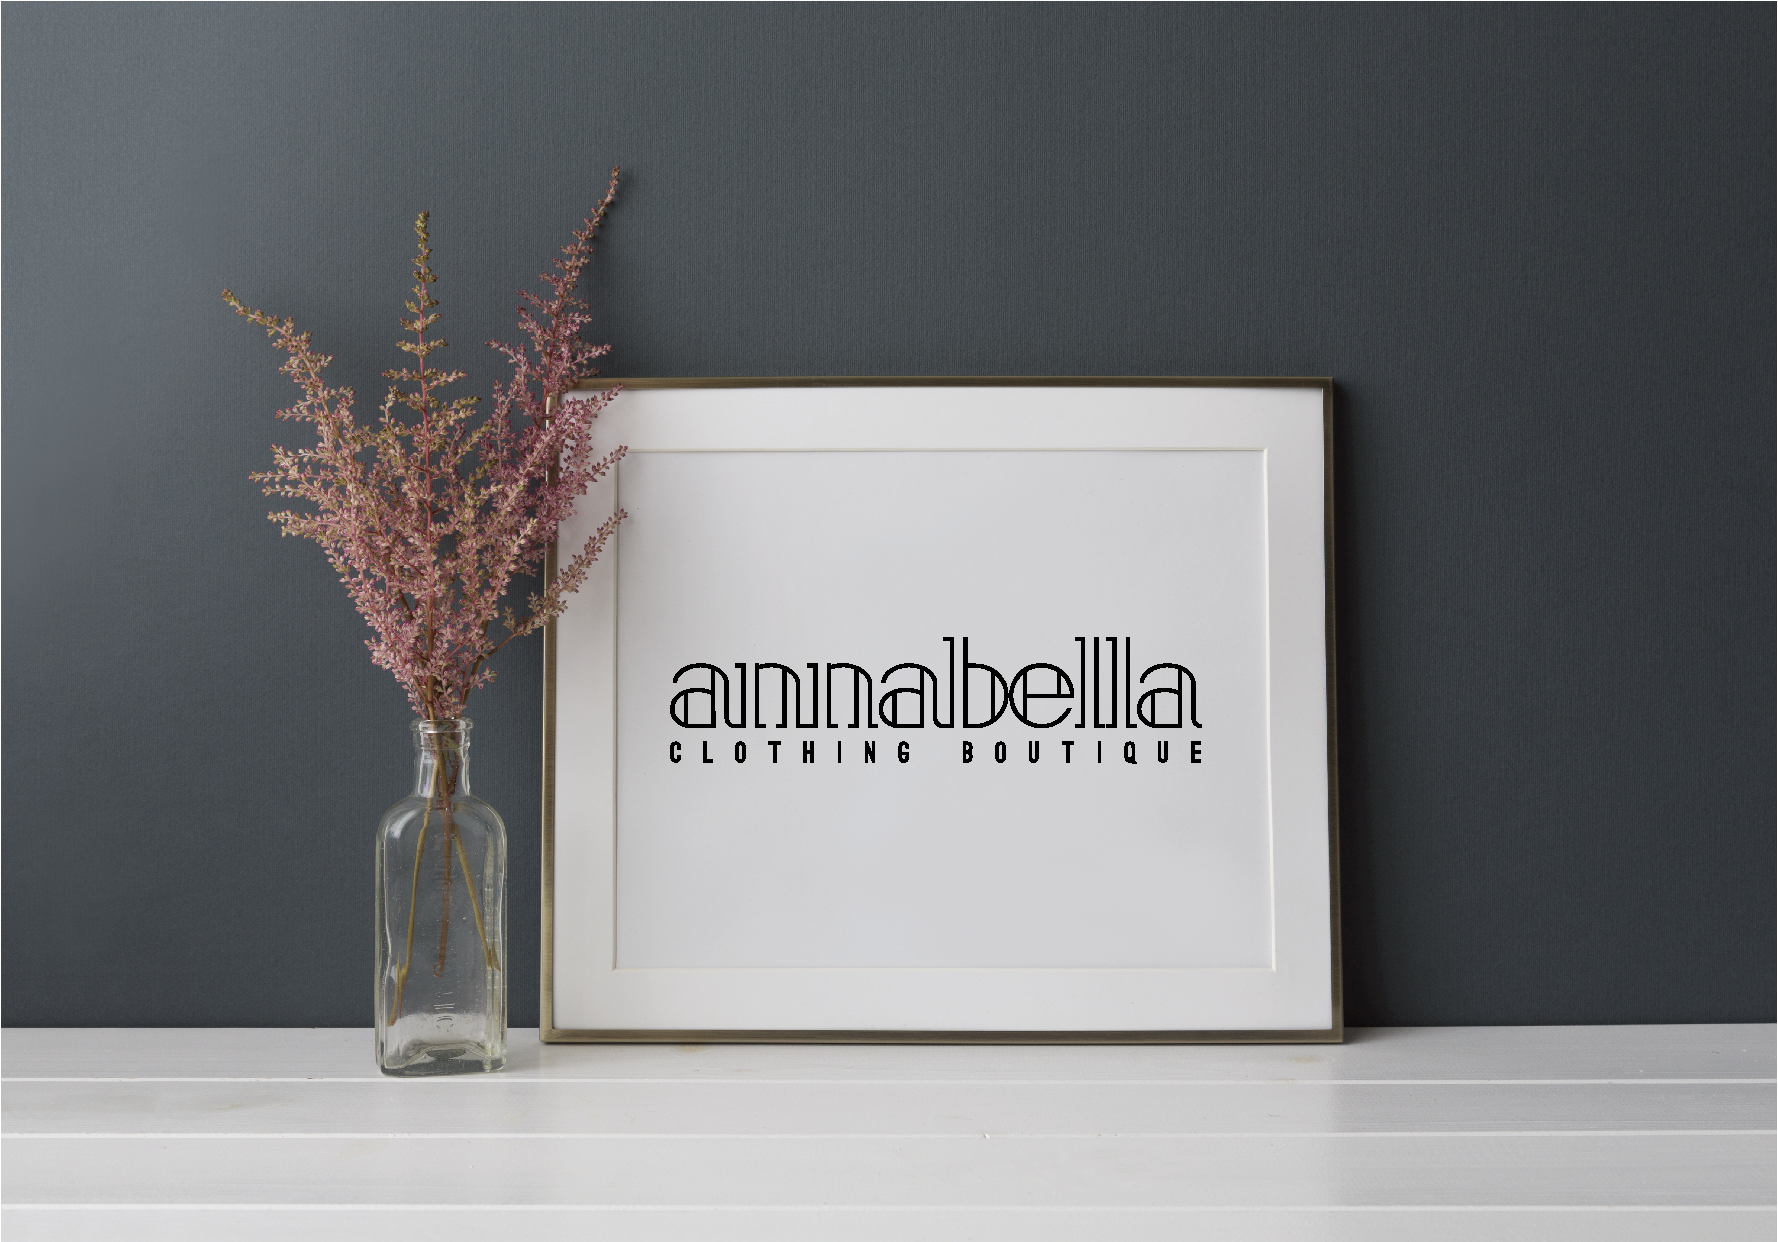 clothing boutique branding kit logo premade package-11.png